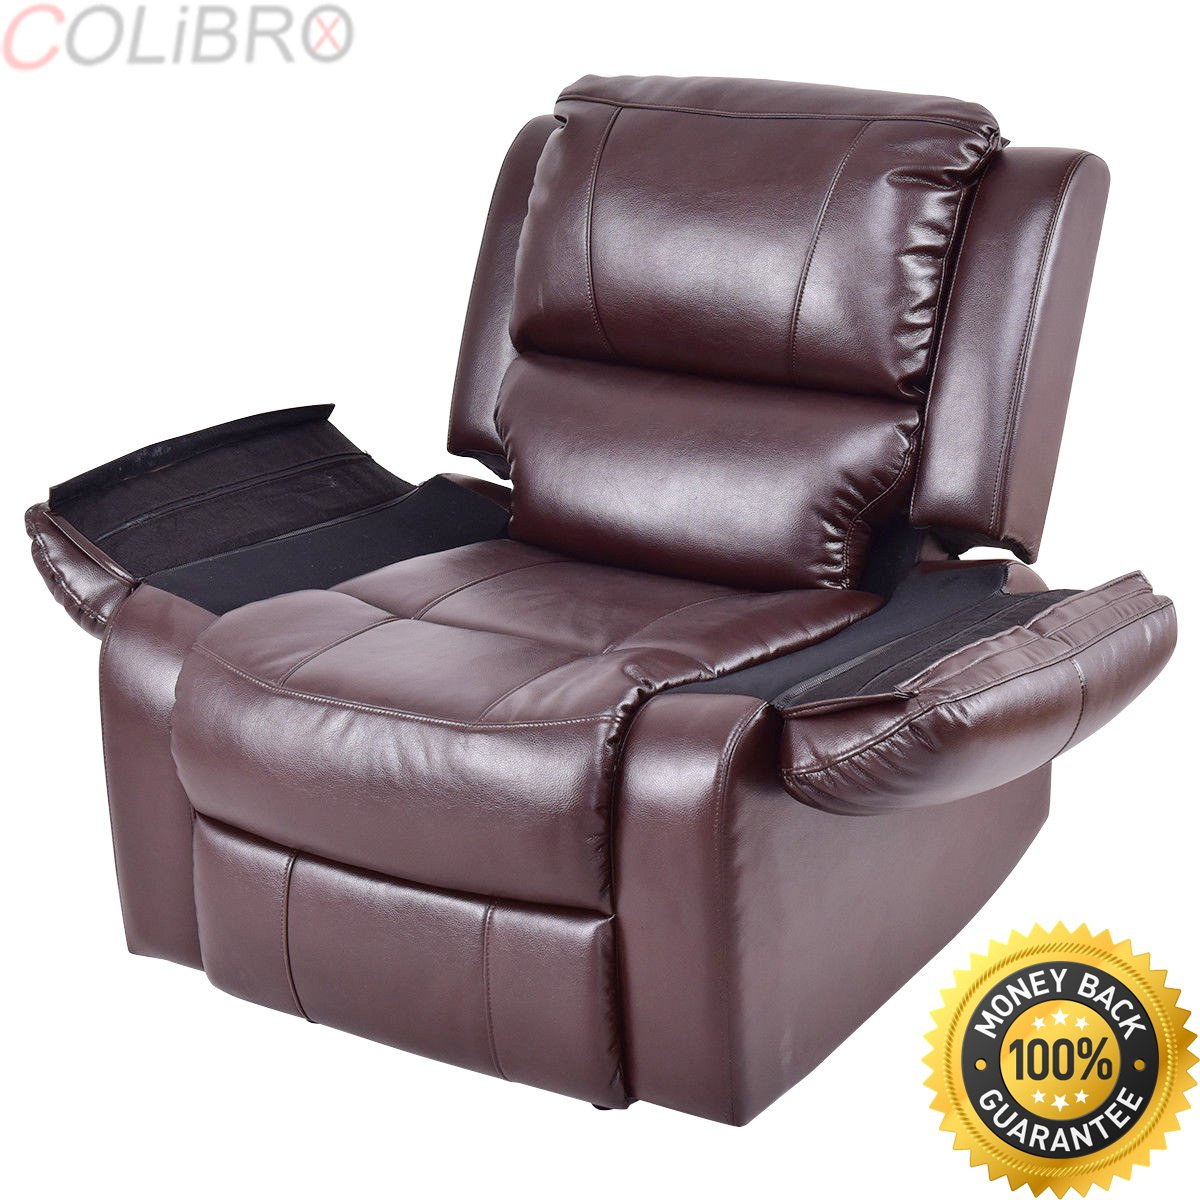 Amazon.com: COLIBROX--Manual Recliner Sofa Lounge Chair PU Leather ...